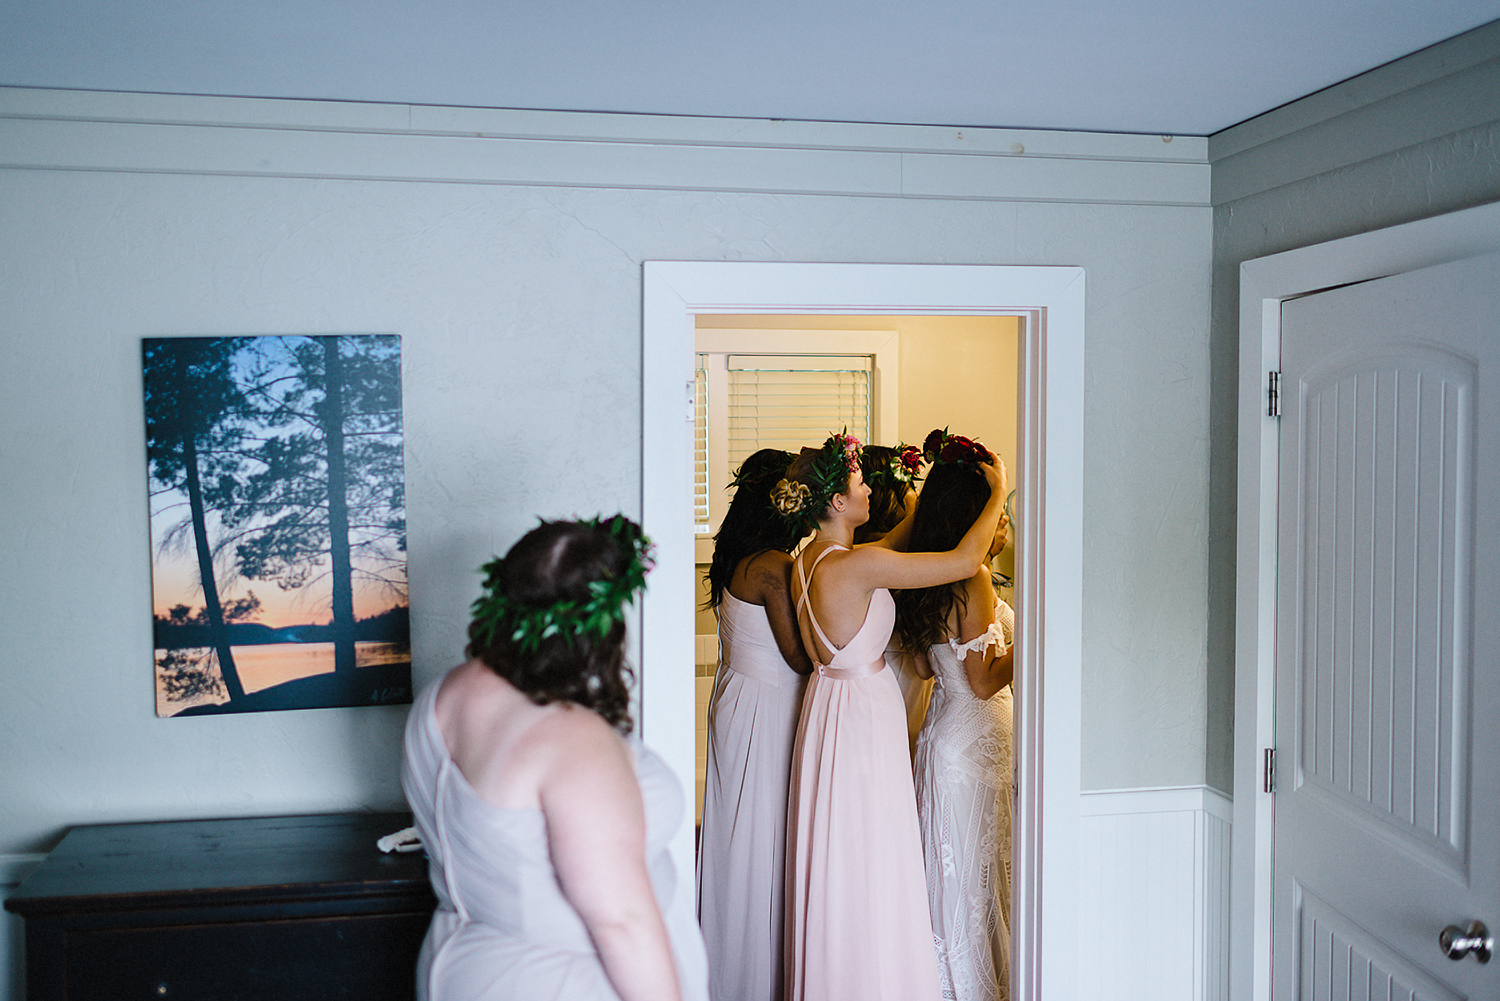 Muskoka-Cottage-Wedding-Photography-Photographer_Photojournalistic-Documentary-Wedding-Photography_Vintage-Bride-Sherwood-Inn-Lake-Wedding-Venue_Bridesmaids-Getting-Ready-with-Bride.jpg